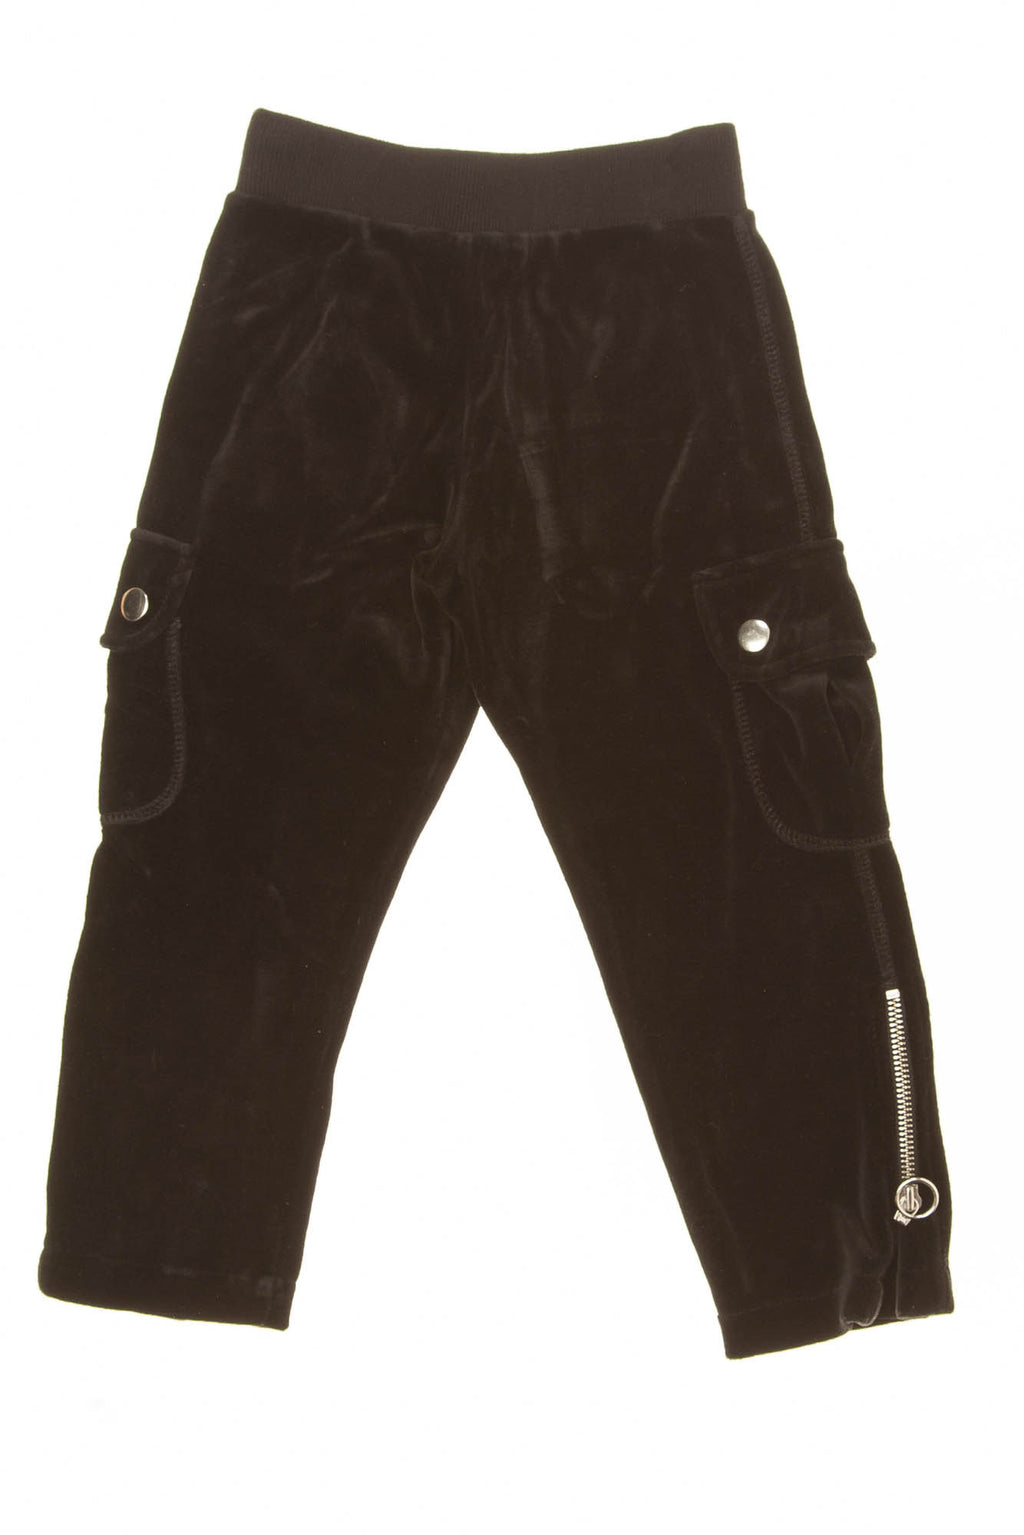 Rykiel Enfant - Black Pants with Zippers - 4A